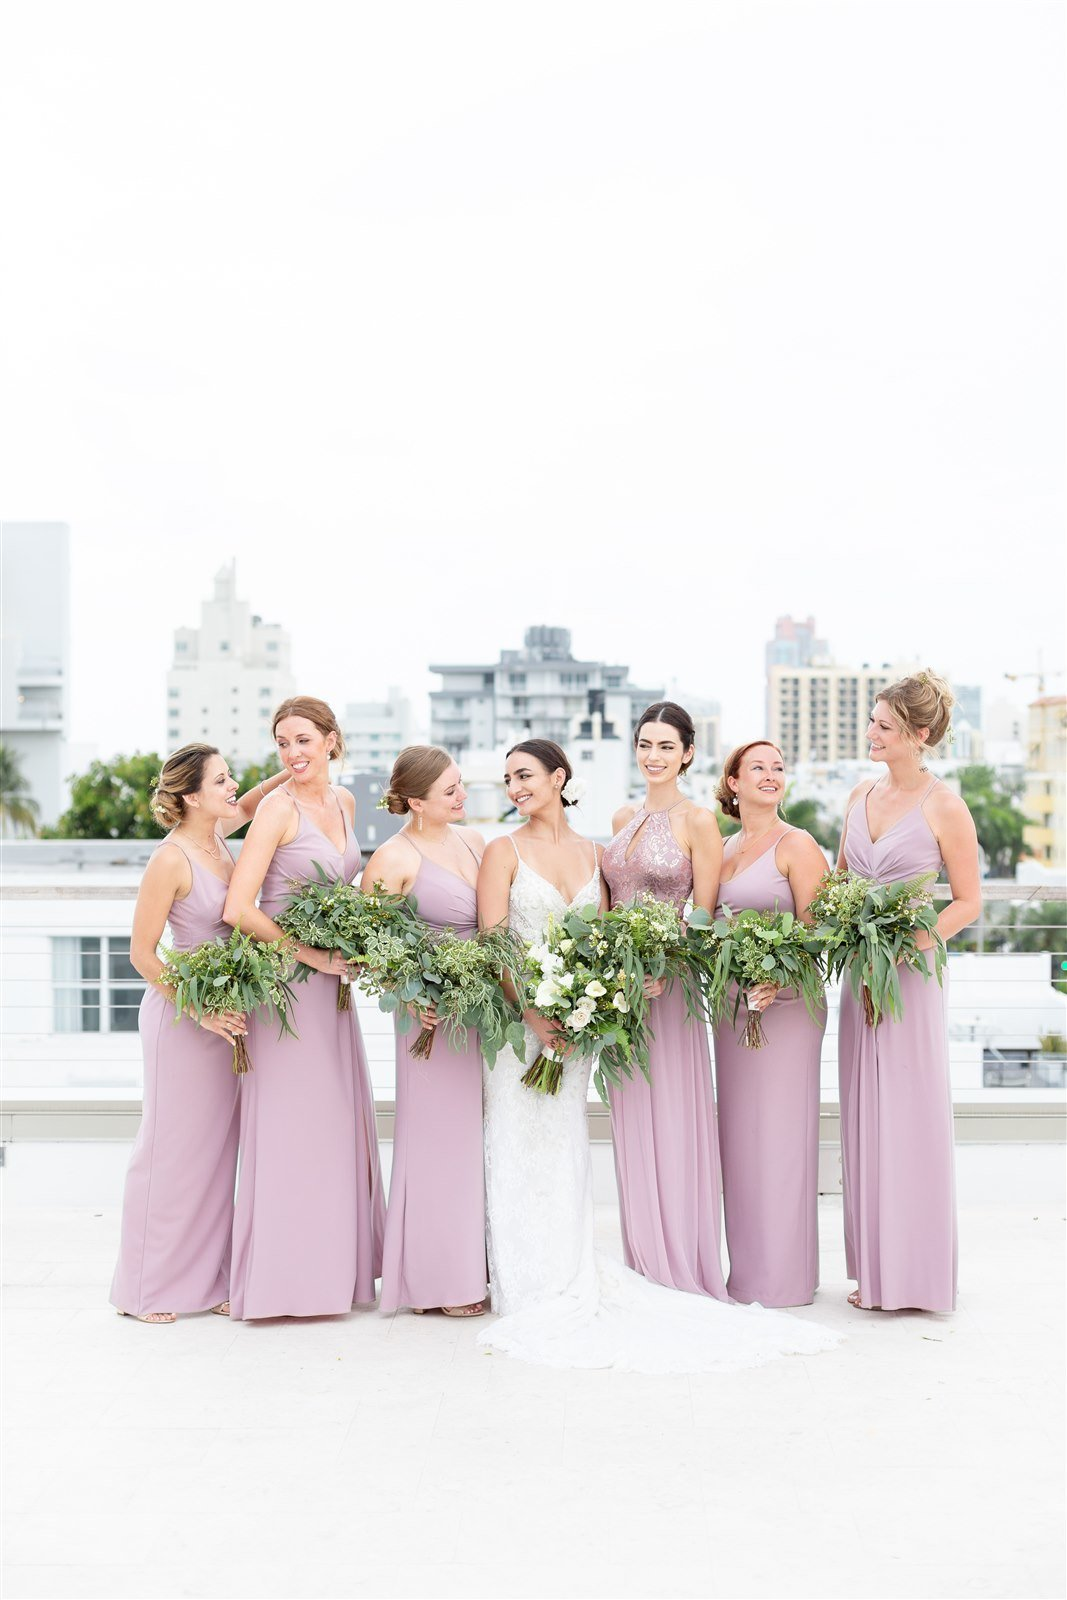 Betsy-Hotel-Miami-Beach-Wedding-Bridal-Party-Chris-and-Micaela-Photography-60